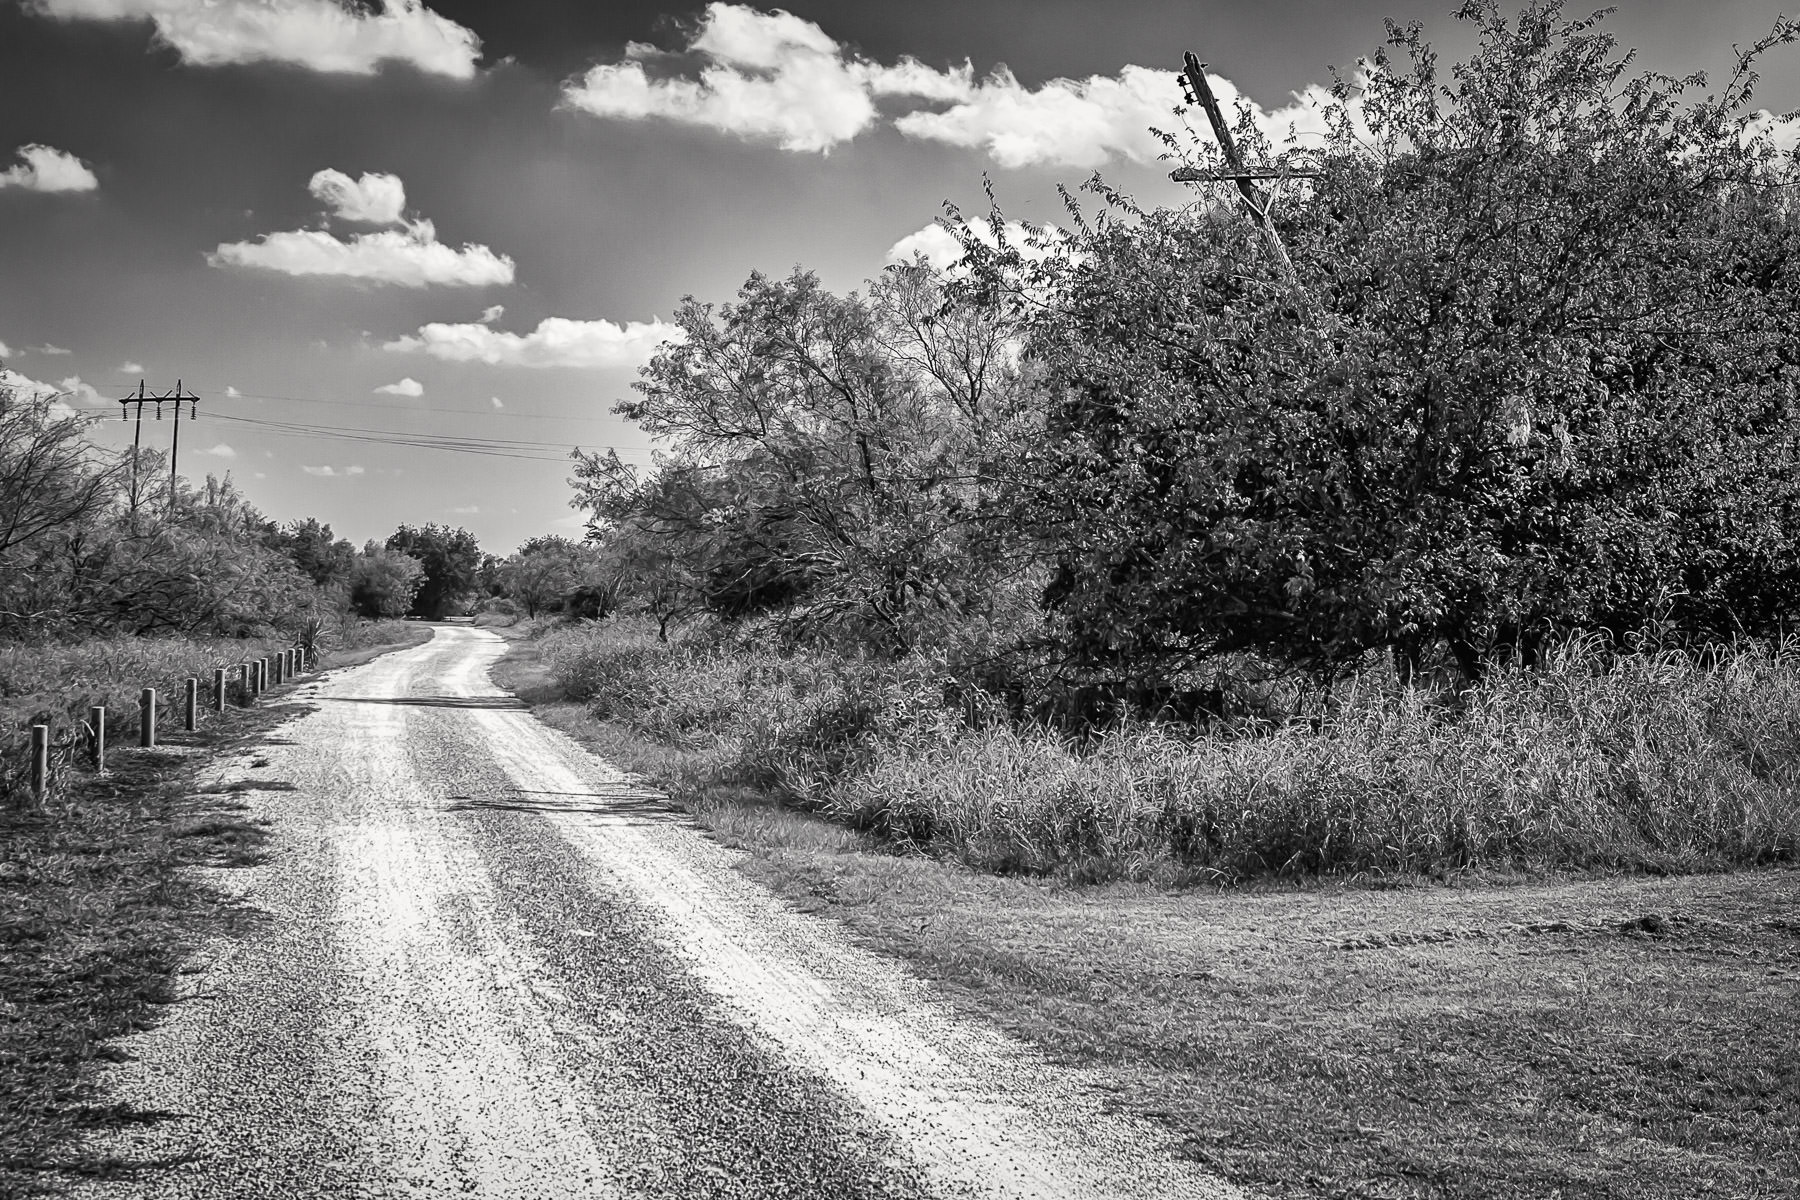 A caliche road leads through the brush a Fort Richardson State Park in Jacksboro, Texas.